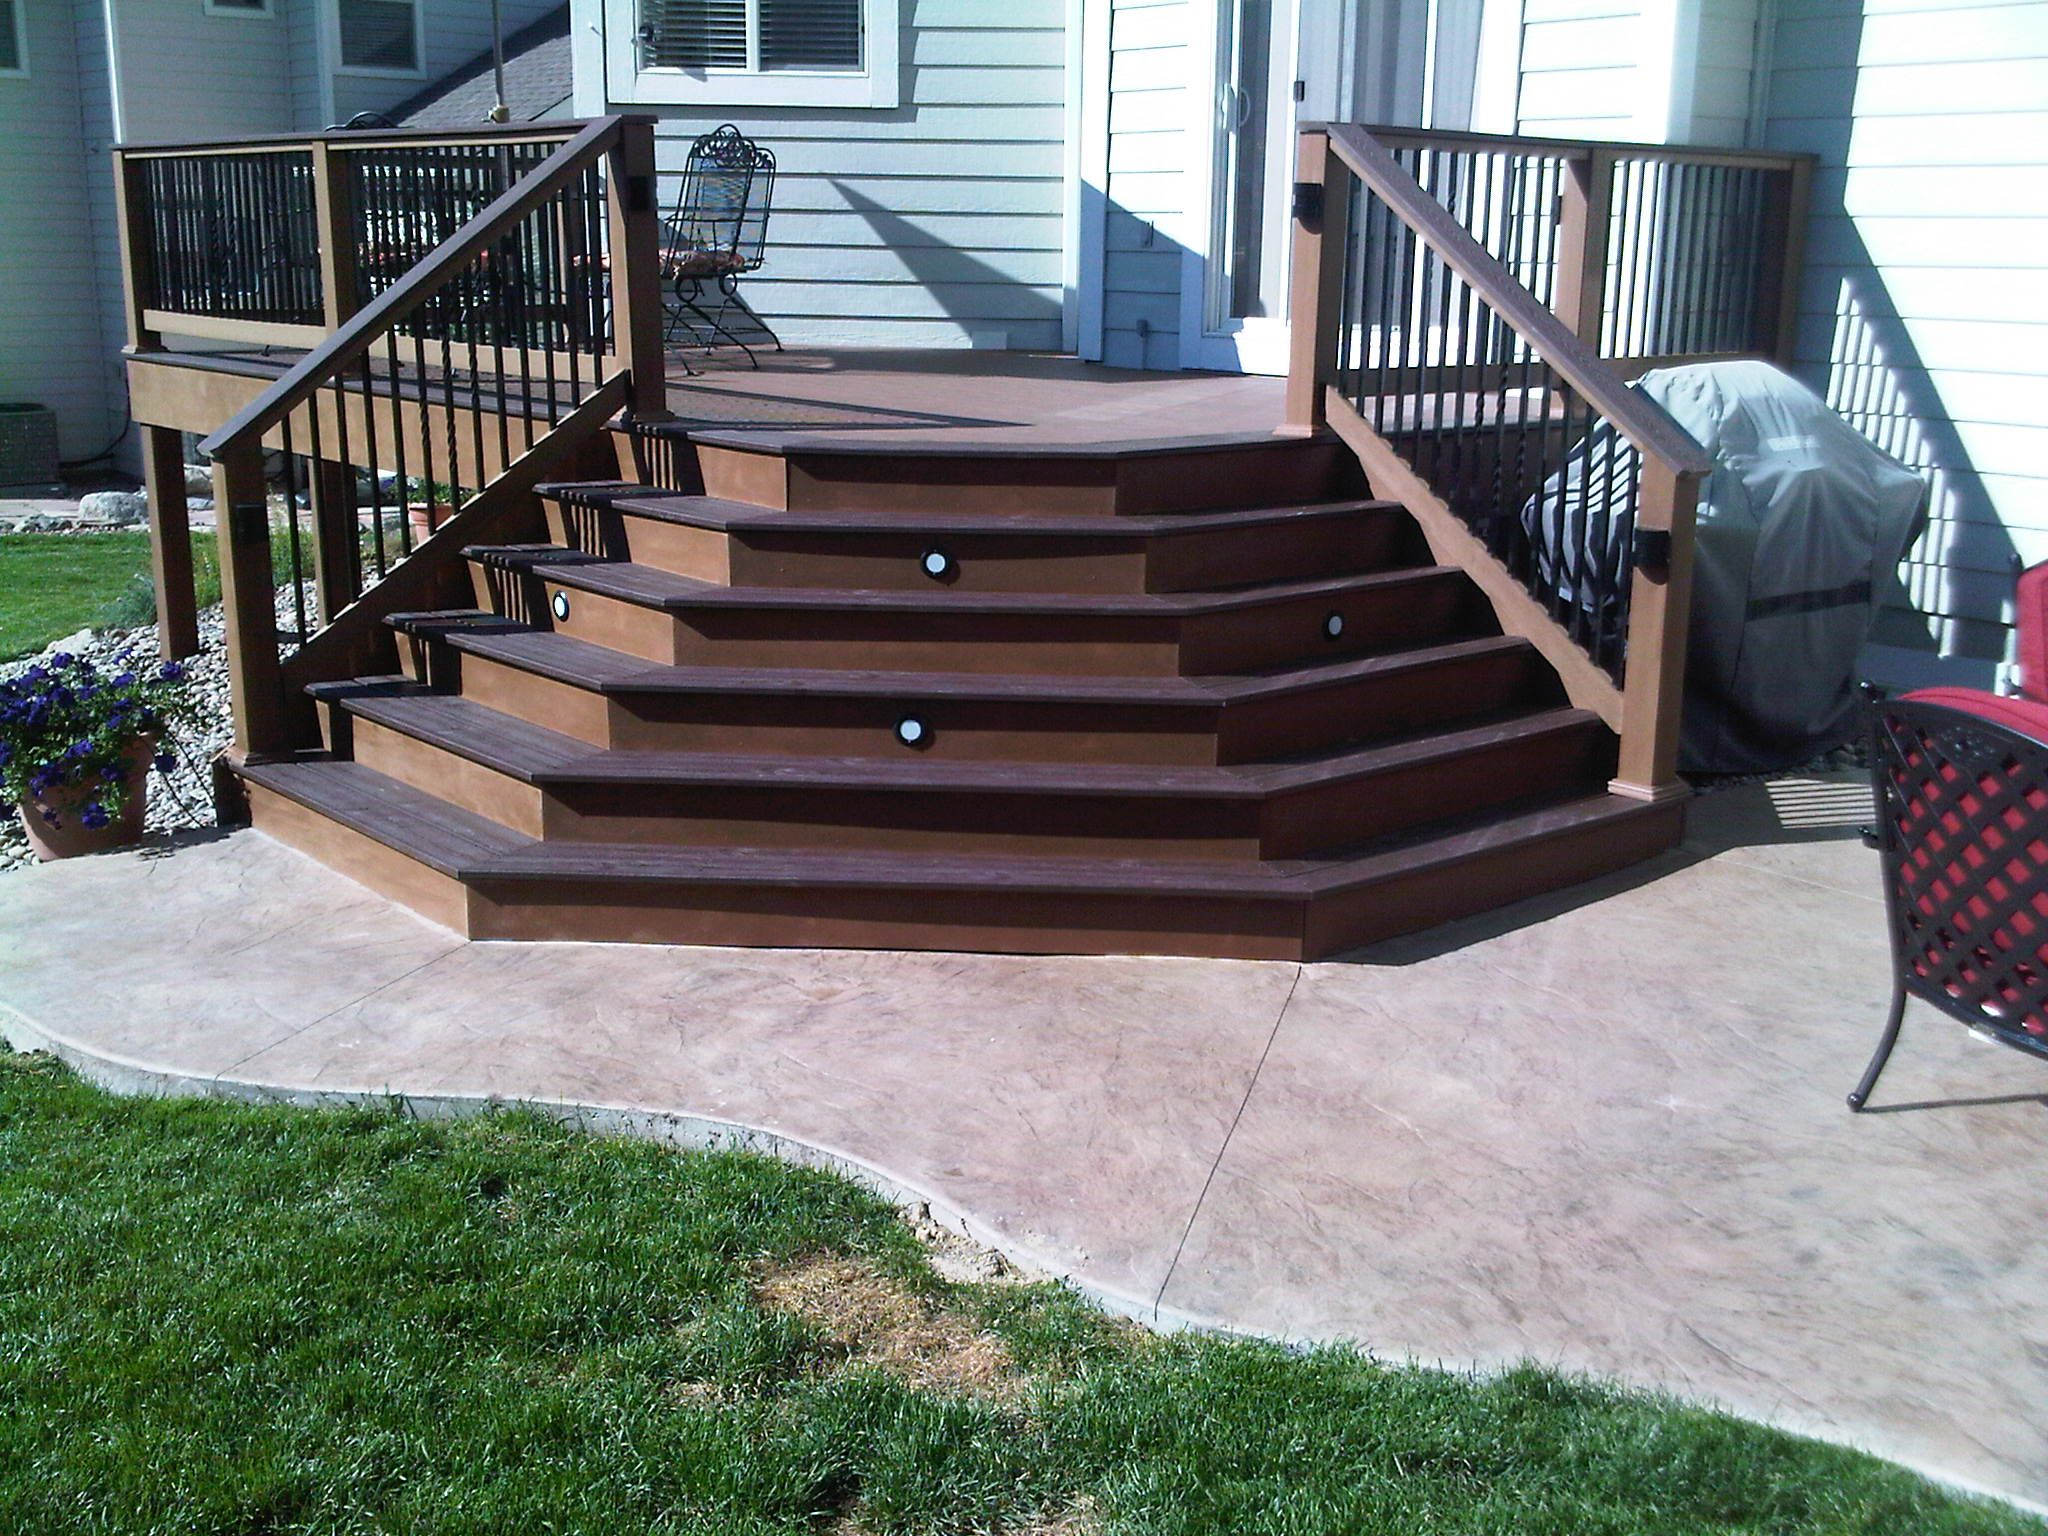 Splayed TREX Composite Deck Stairs Onto Stamped Concrete Patio, Blending  The Outdoor Spaces.